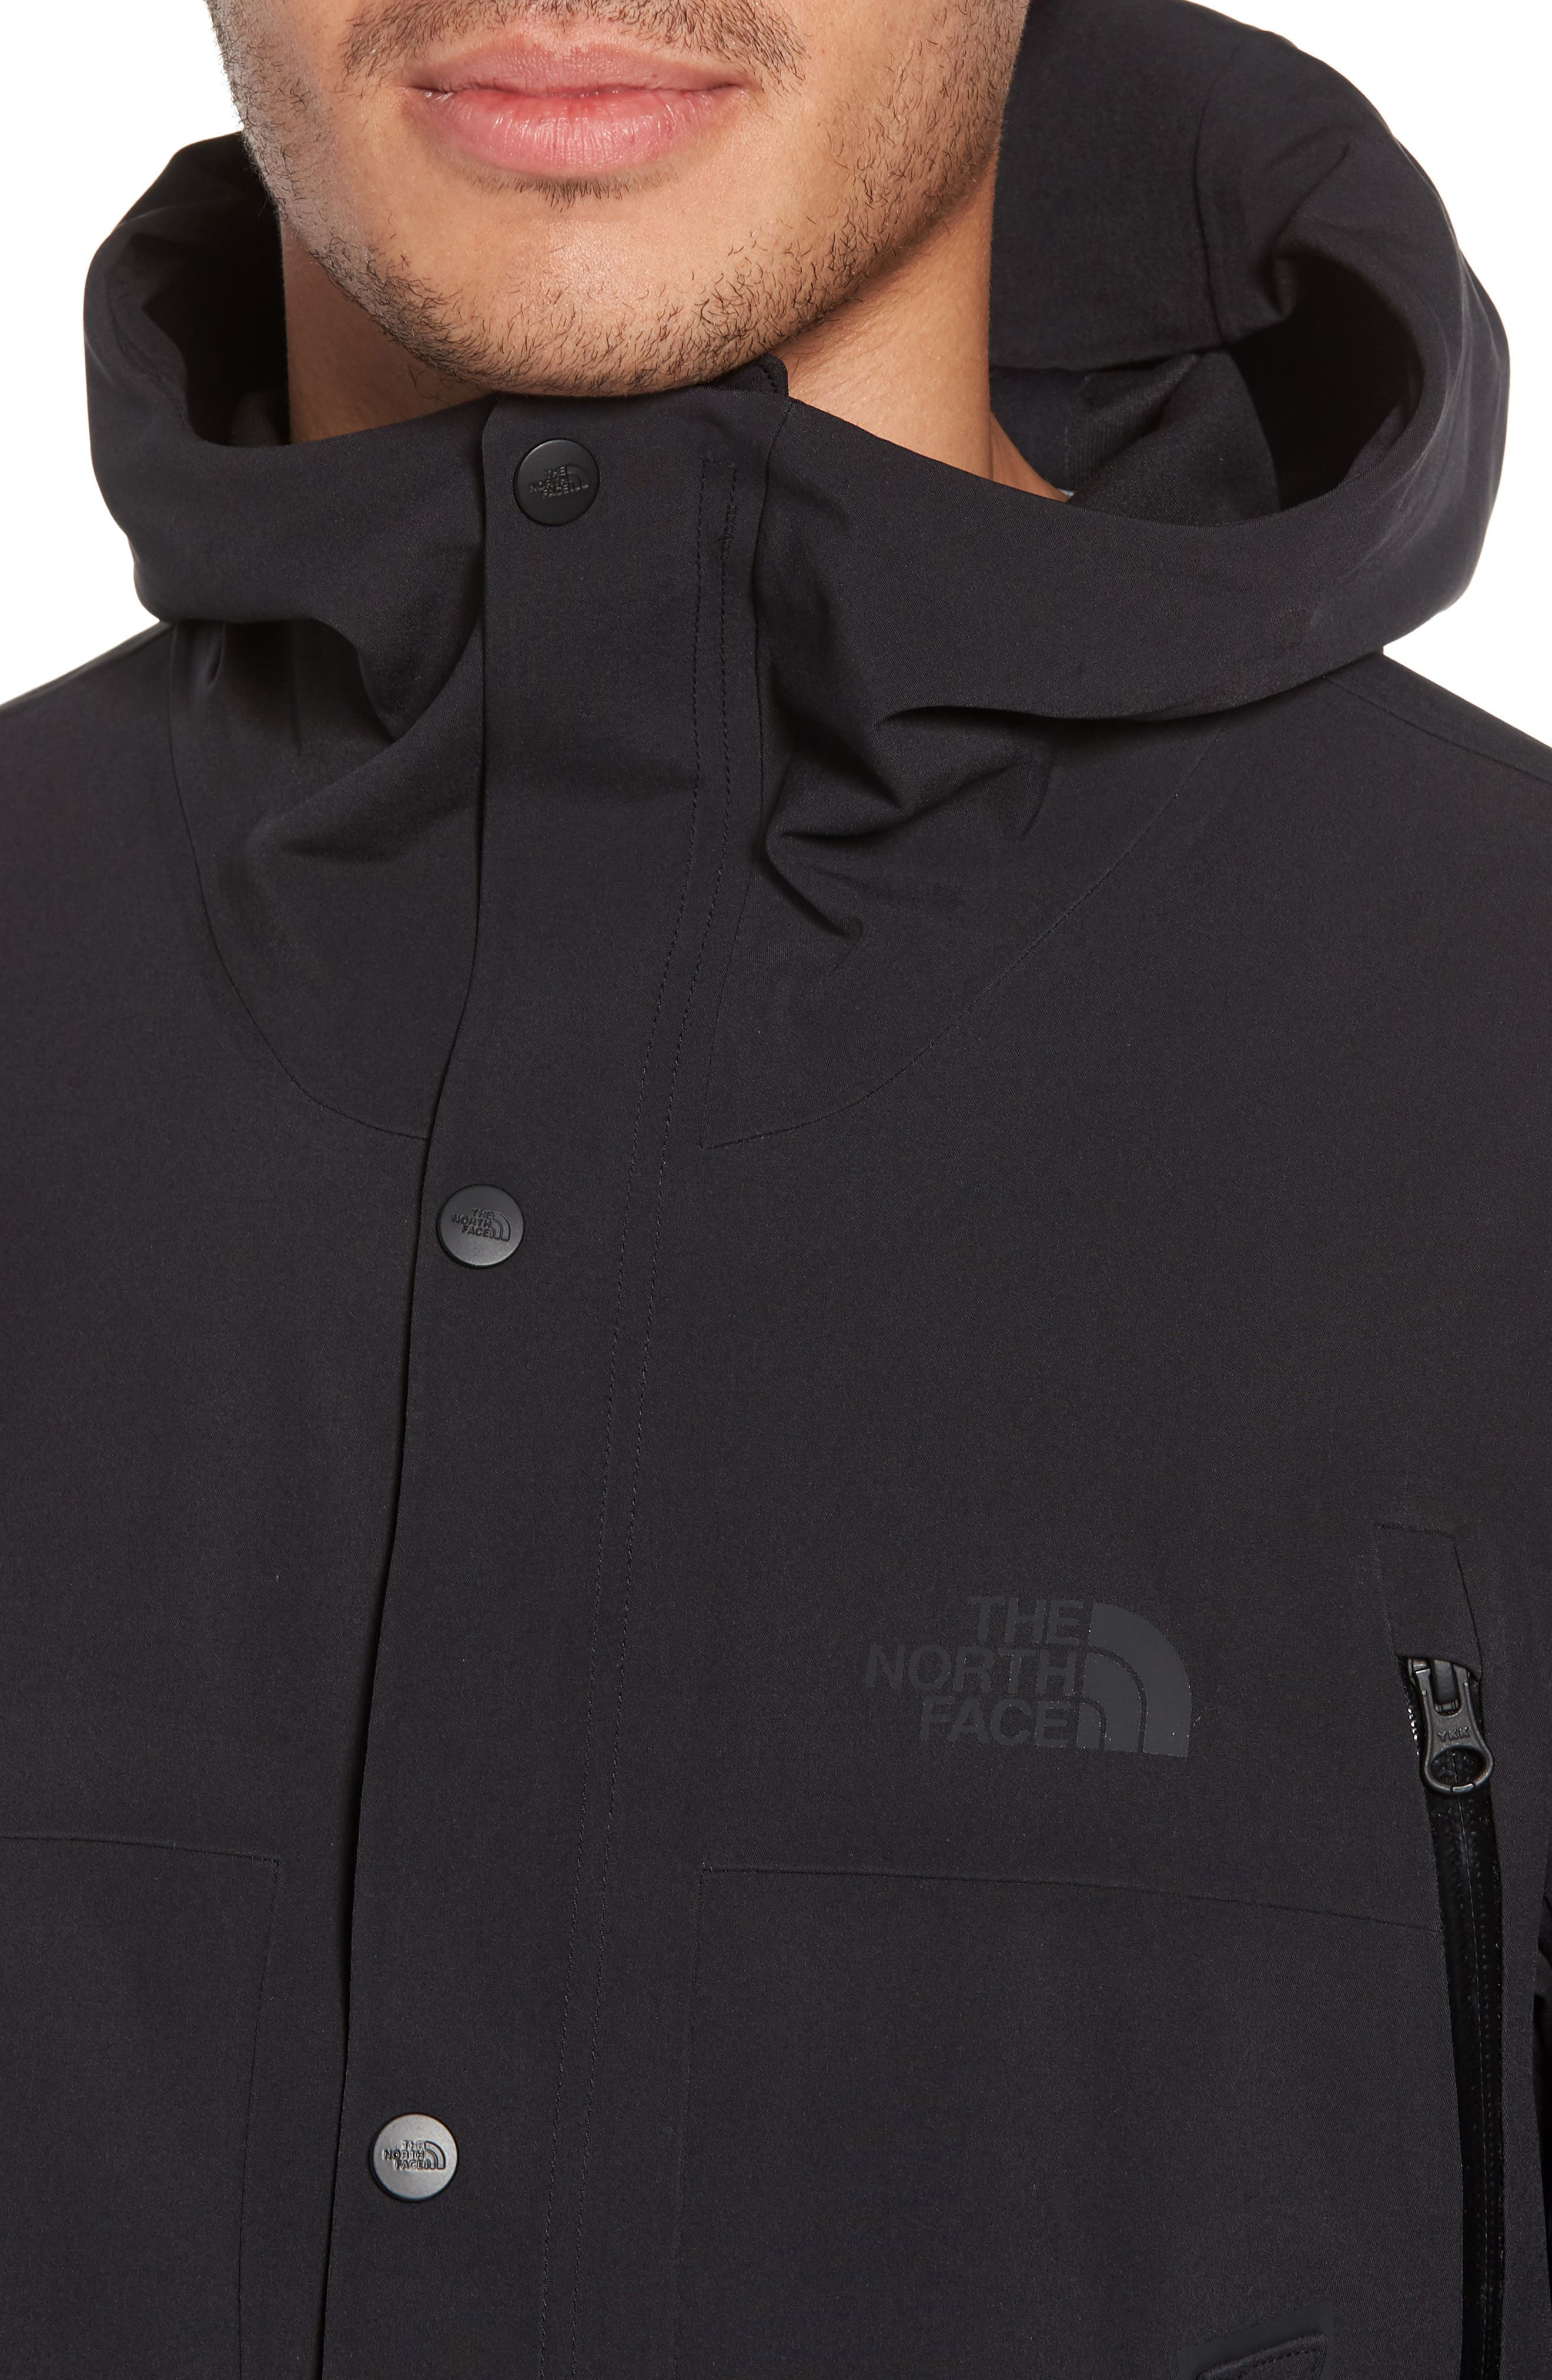 THE NORTH FACE, Apex Flex Gore-Tex<sup>®</sup> Parka, Alternate thumbnail 5, color, 001